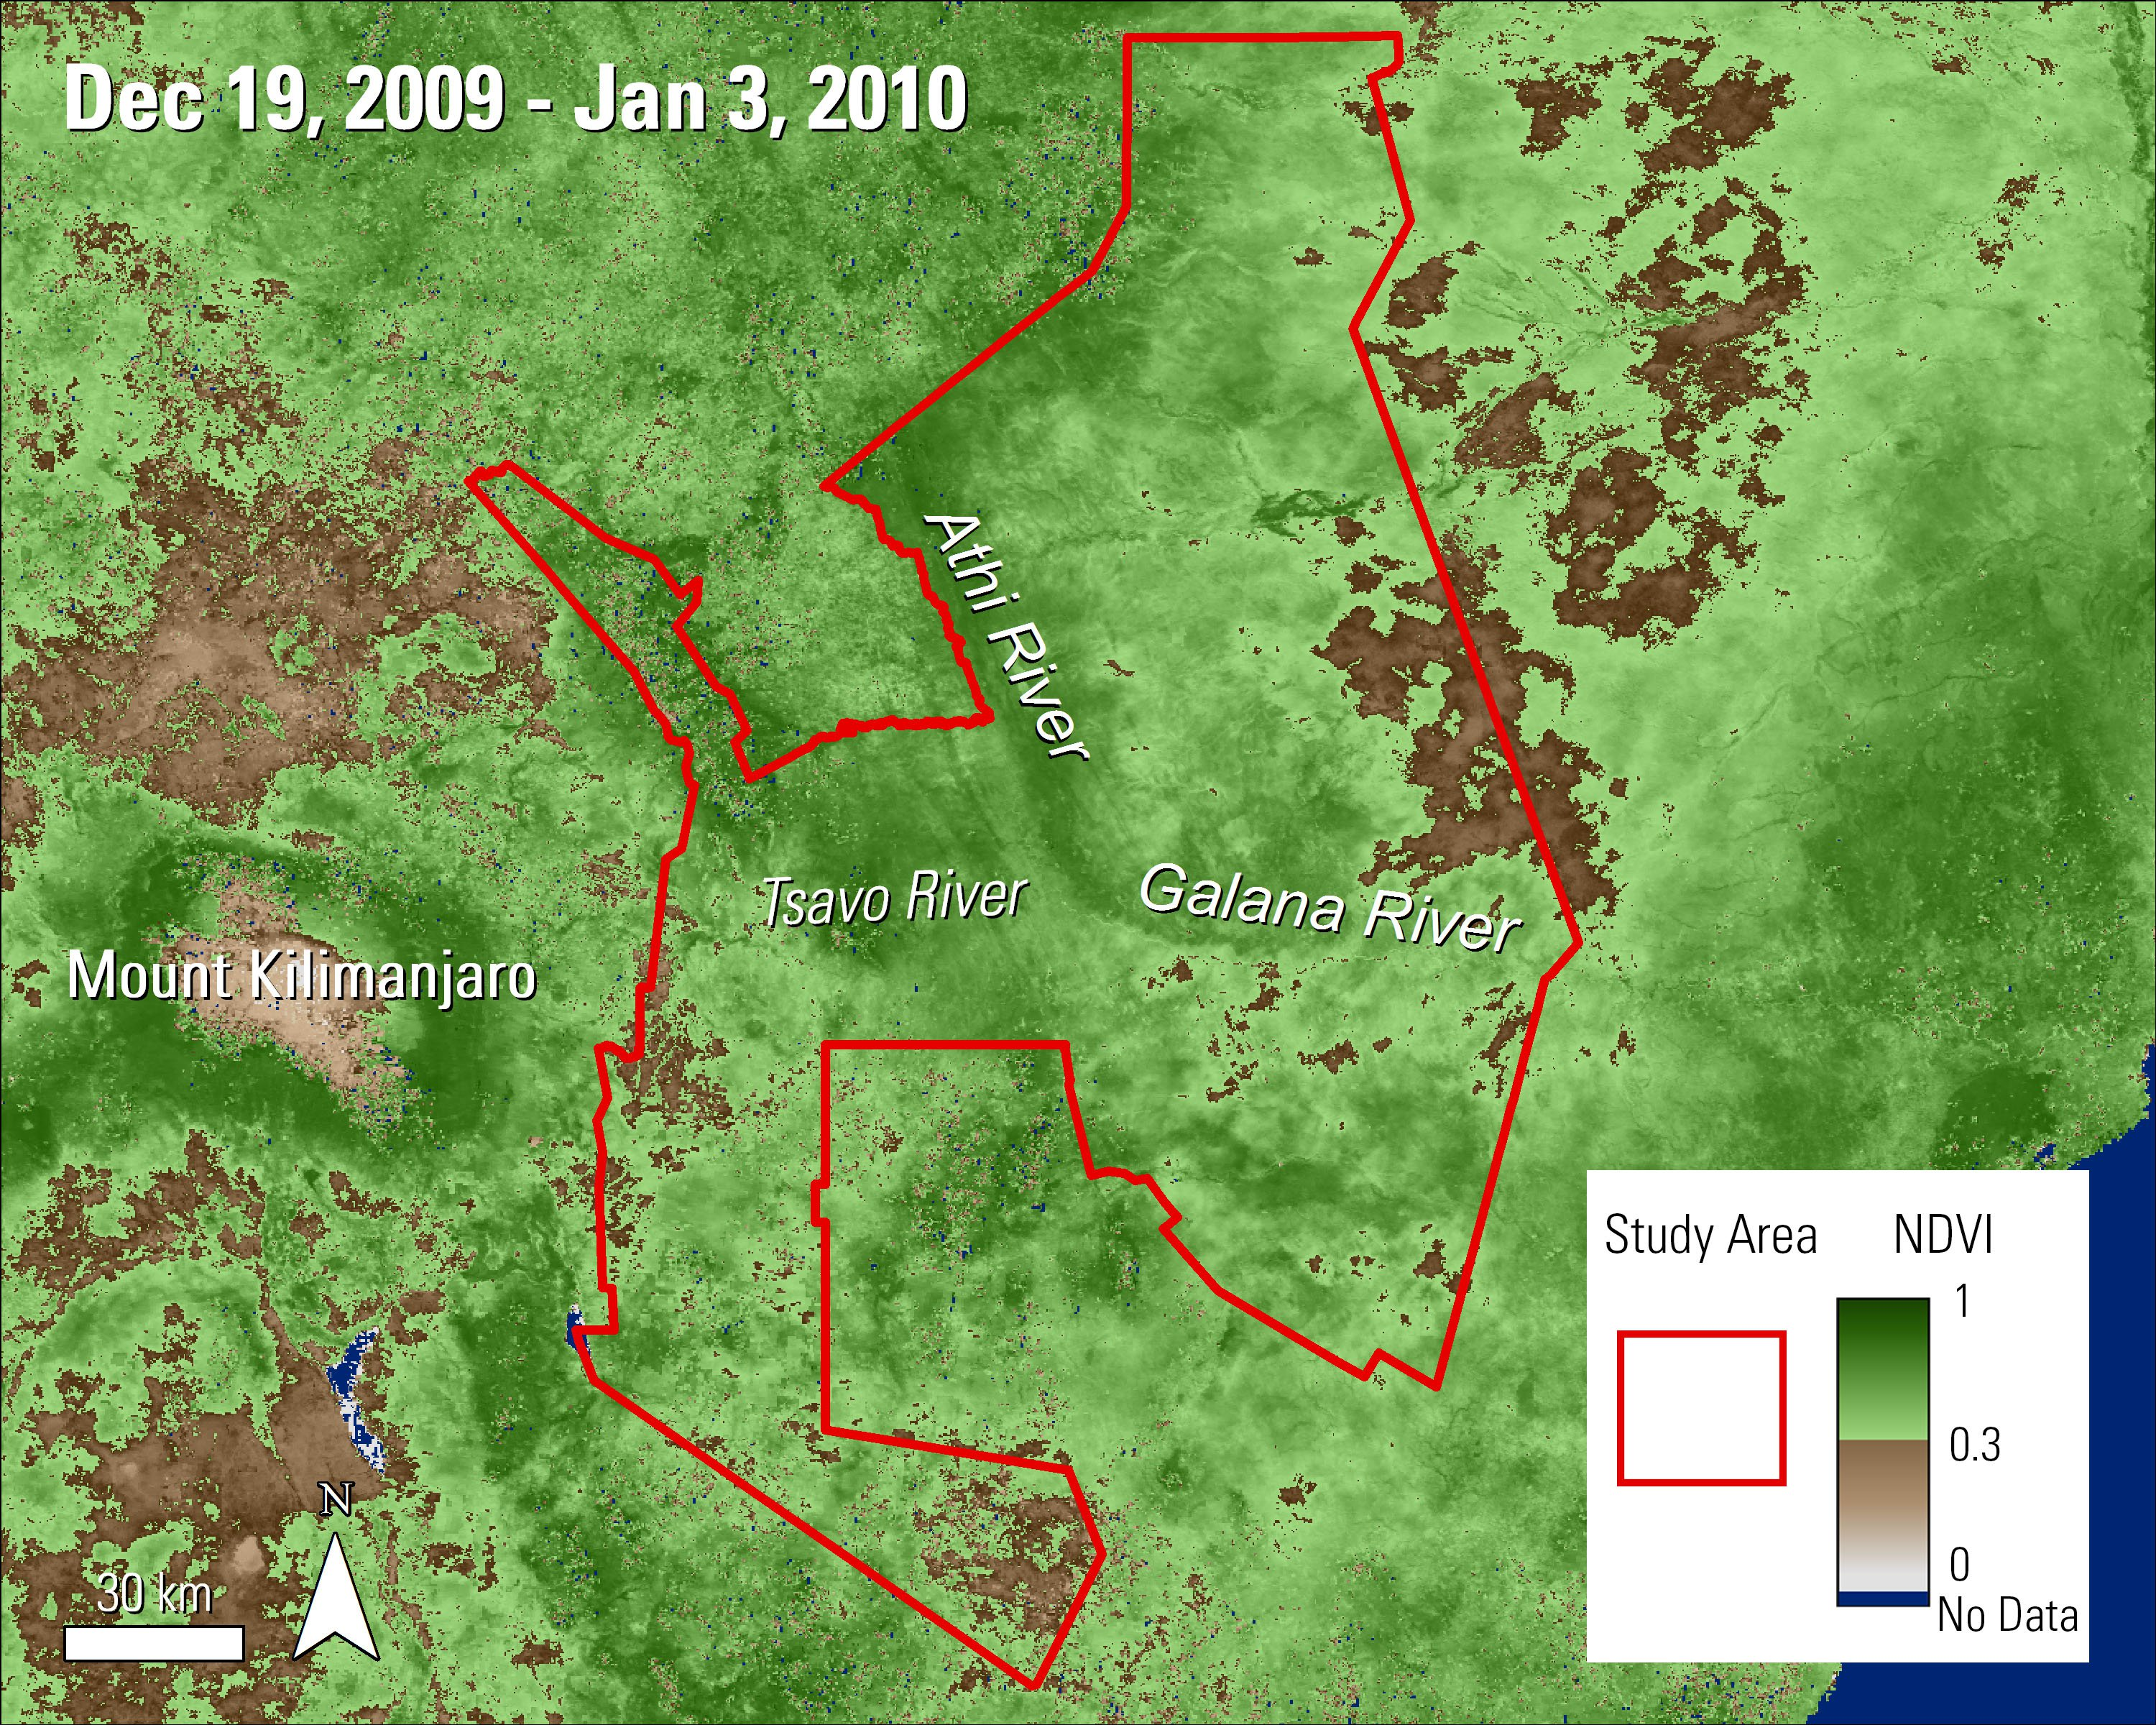 Terra MODIS NDVI data over the Tsavo Conservation Area in Kenya during December and January 2009.